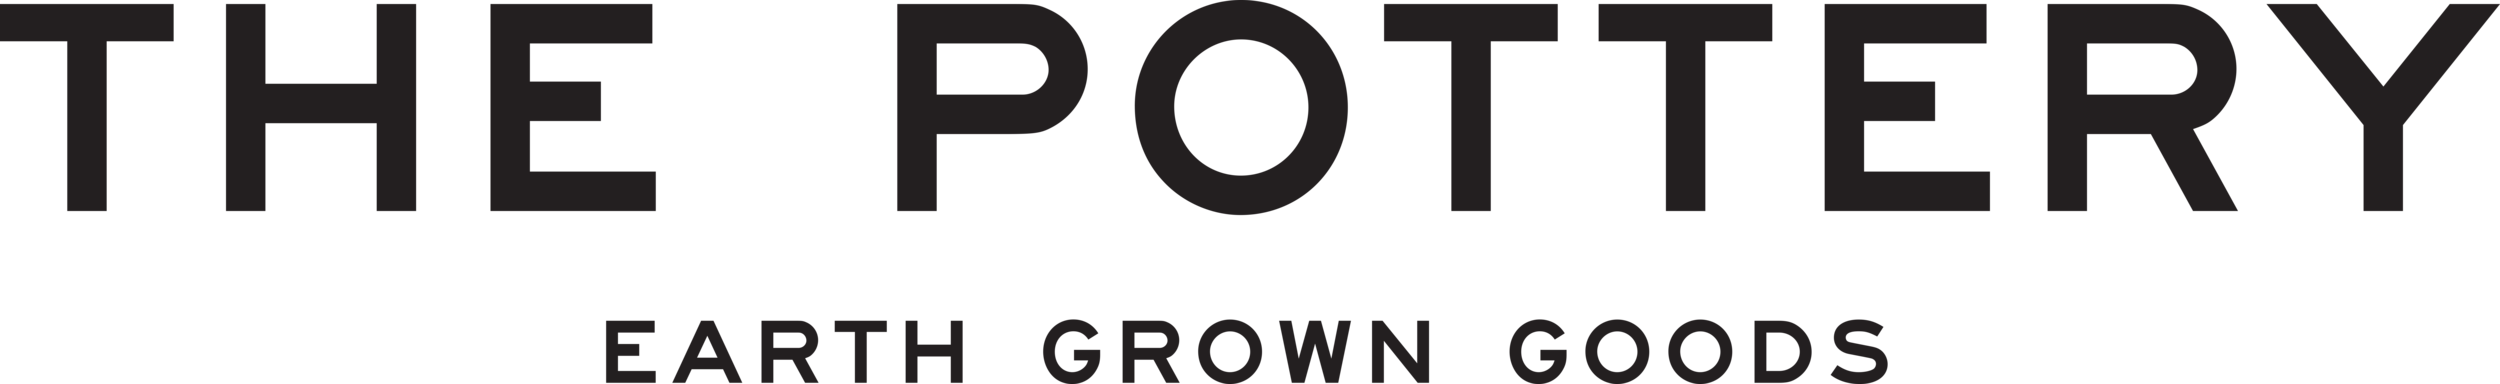 ThePottery-EarthGrownGoods.png